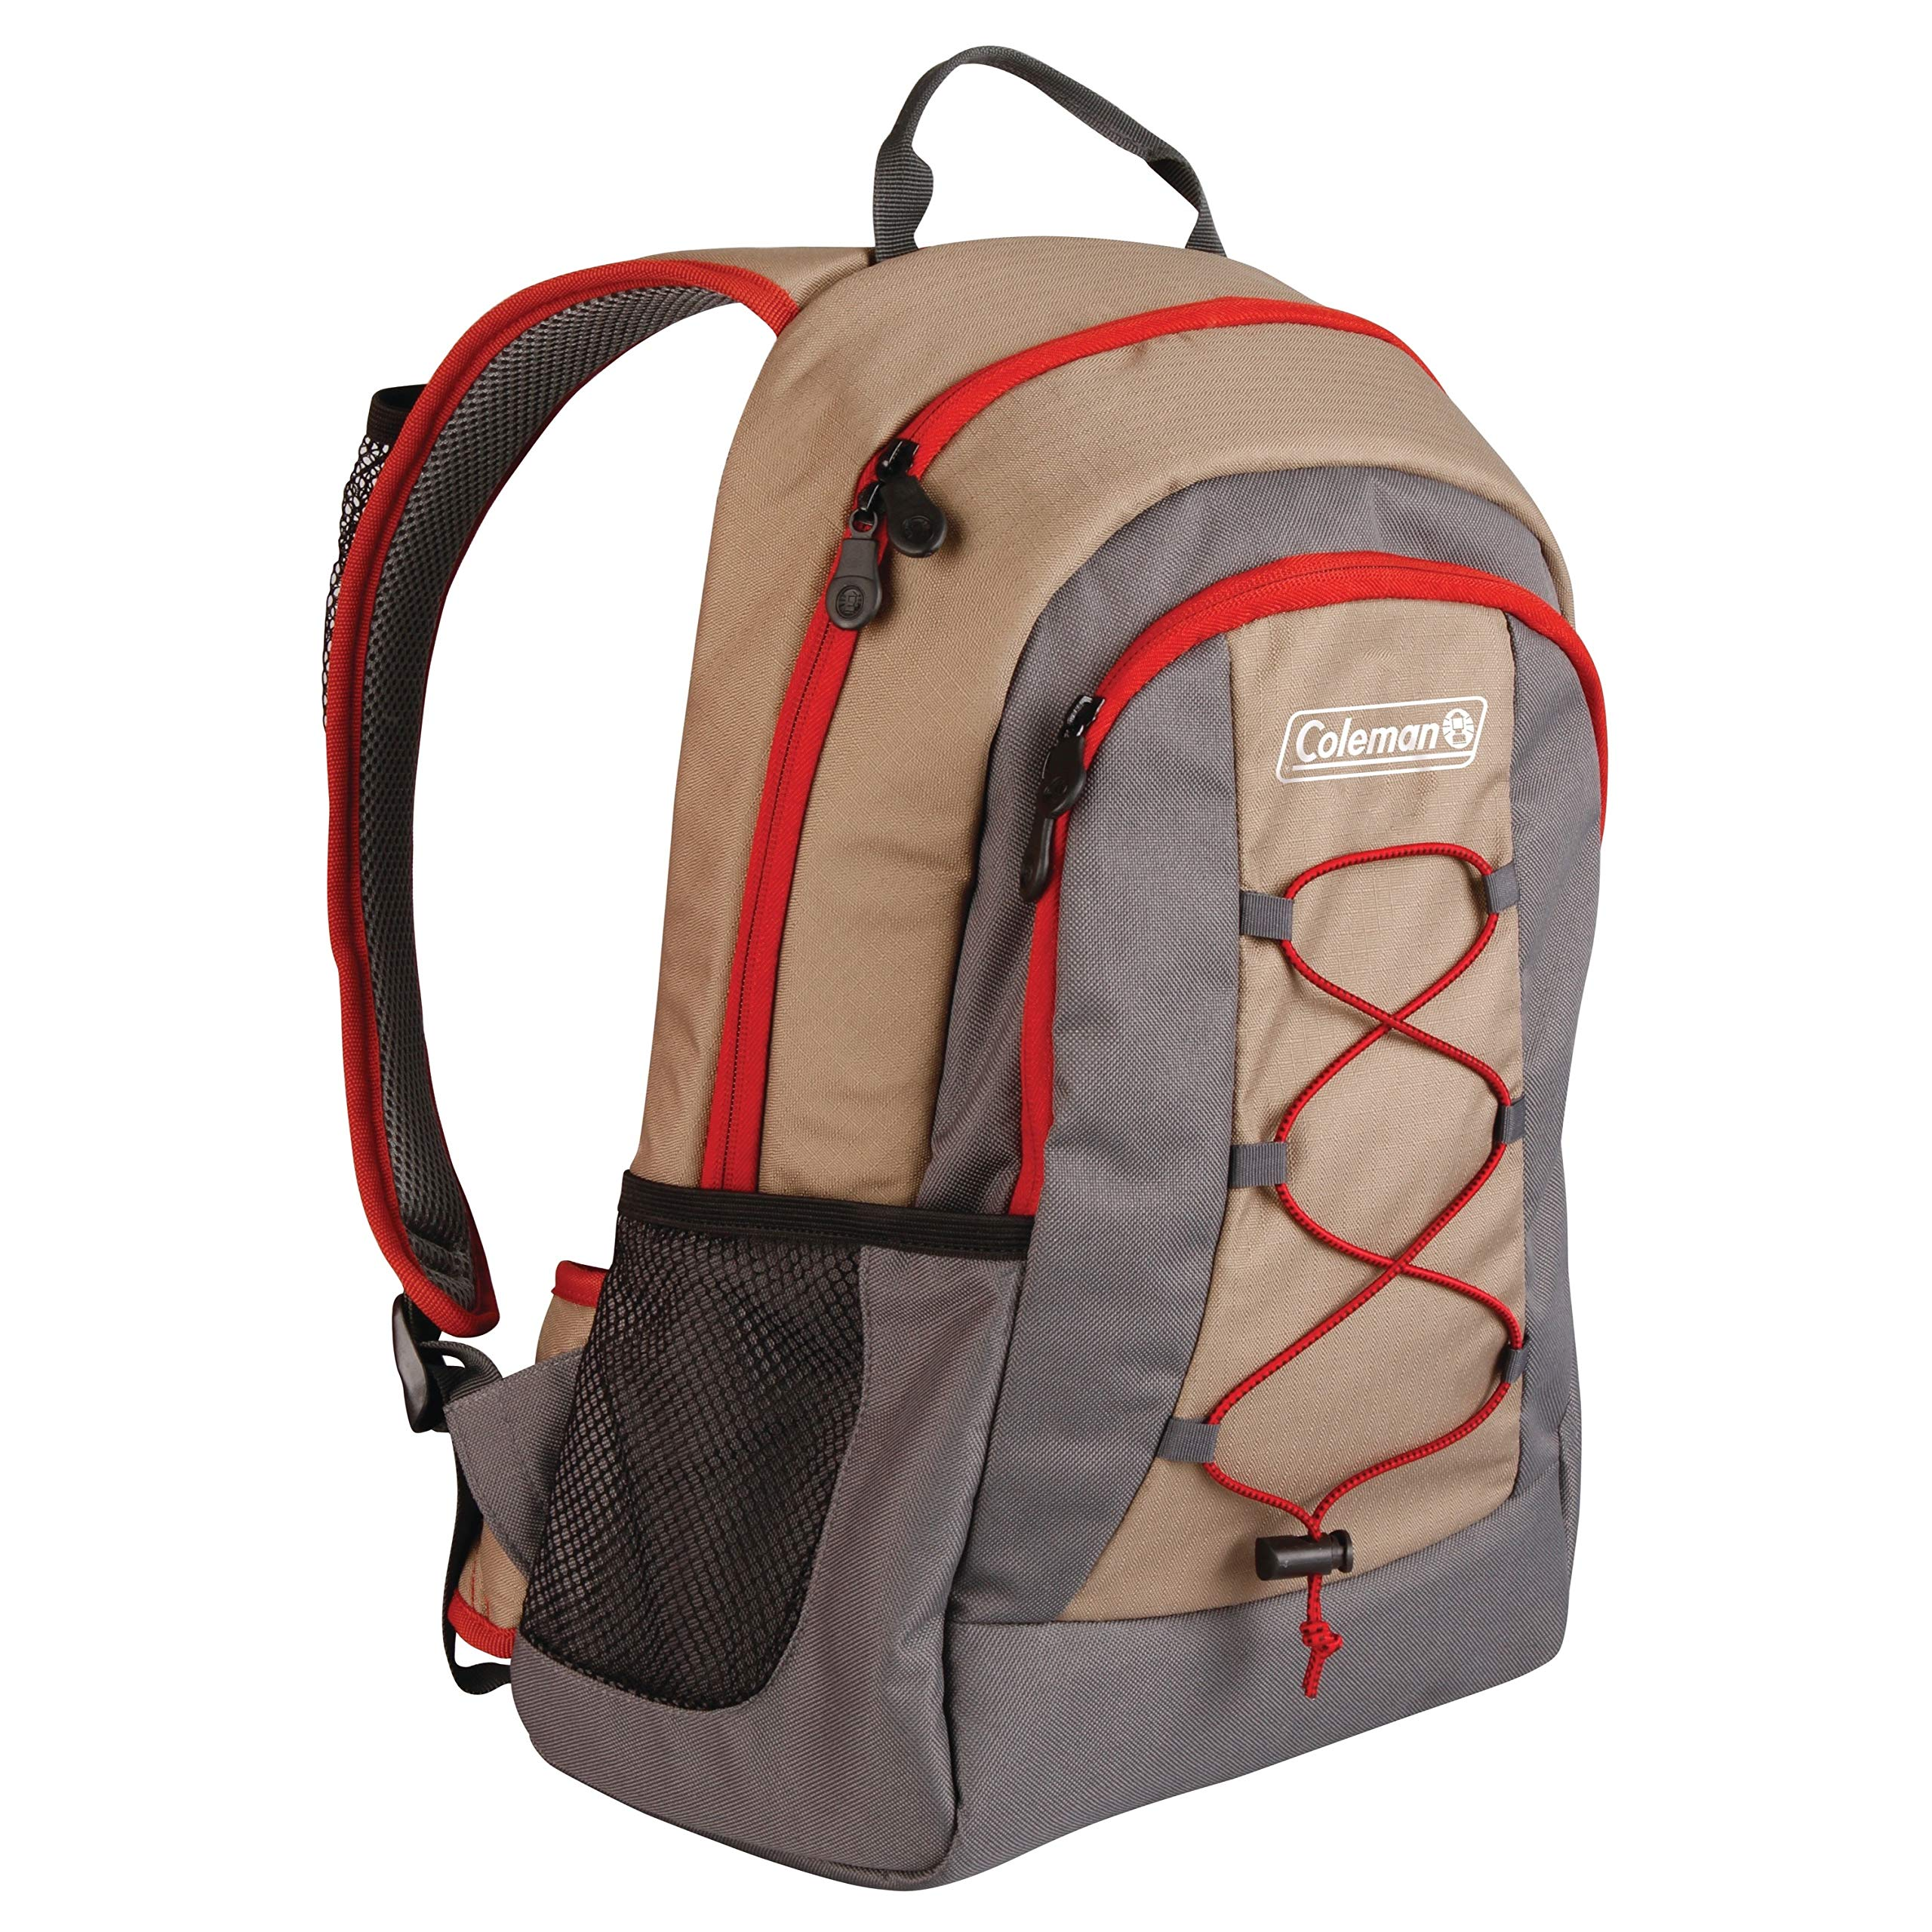 Coleman Soft Cooler Backpack | 28-Can Leak-Proof Cooler | Great for Picnics, BBQs, Camping, Tailgating & Outdoor Activities by Coleman